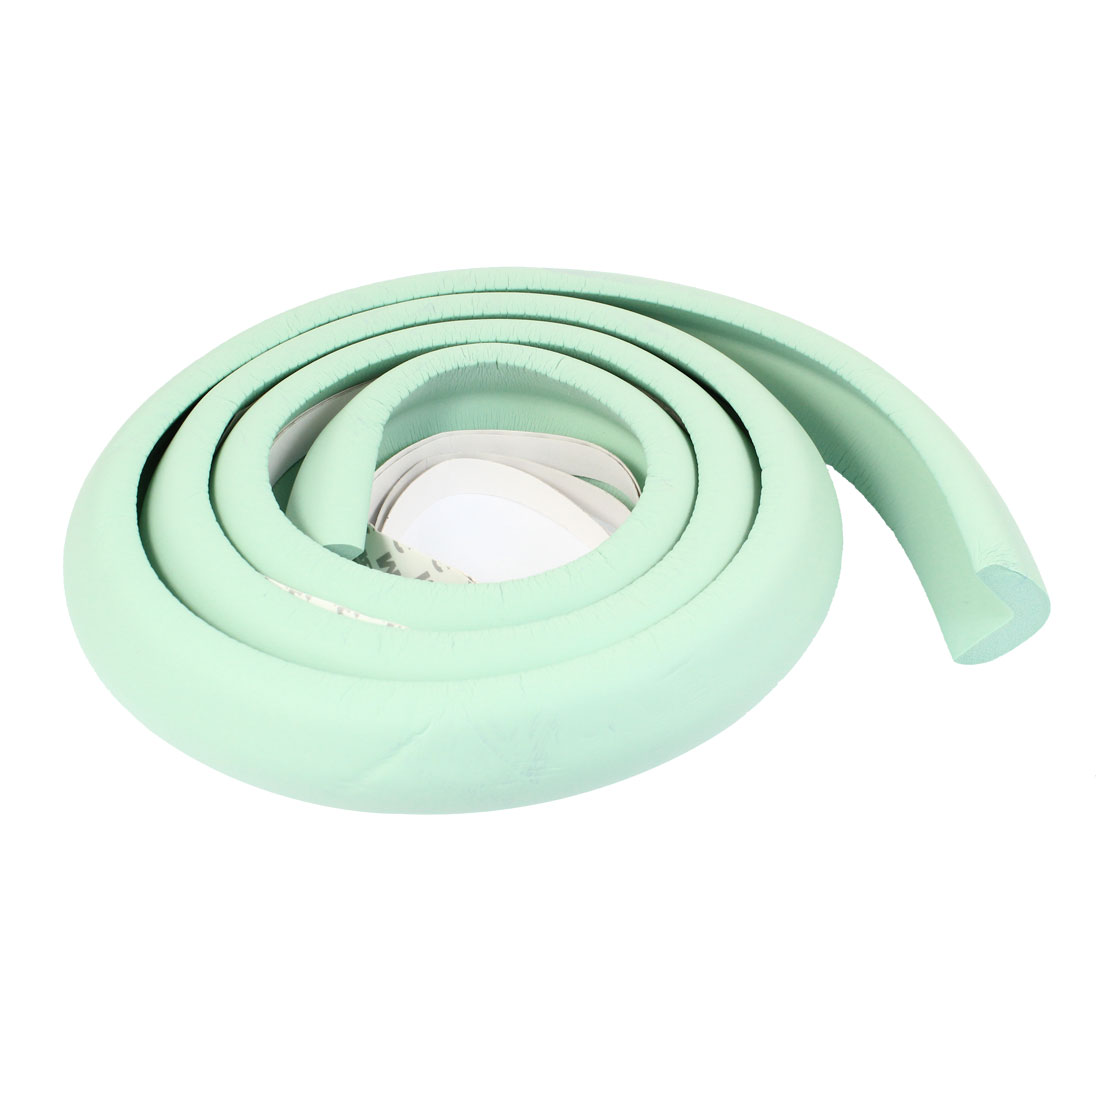 Furniture Desk Table Edge Rim Corner Cushion Strip Cover Protector Green 3 Meters